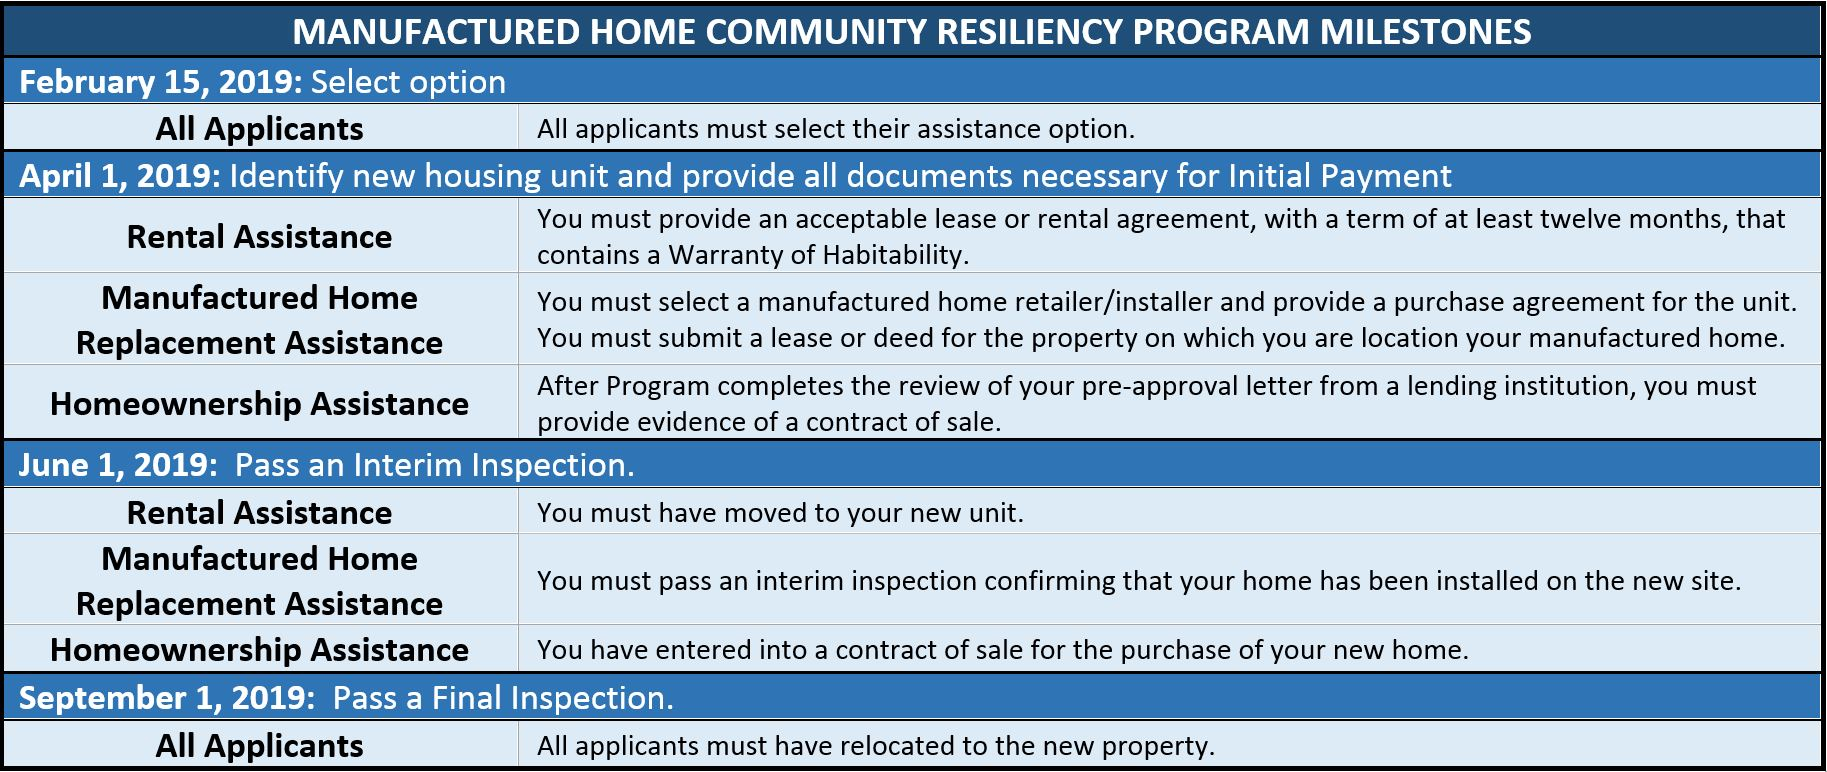 Manufactured Home Community Resiliency Program Deadlines Chart